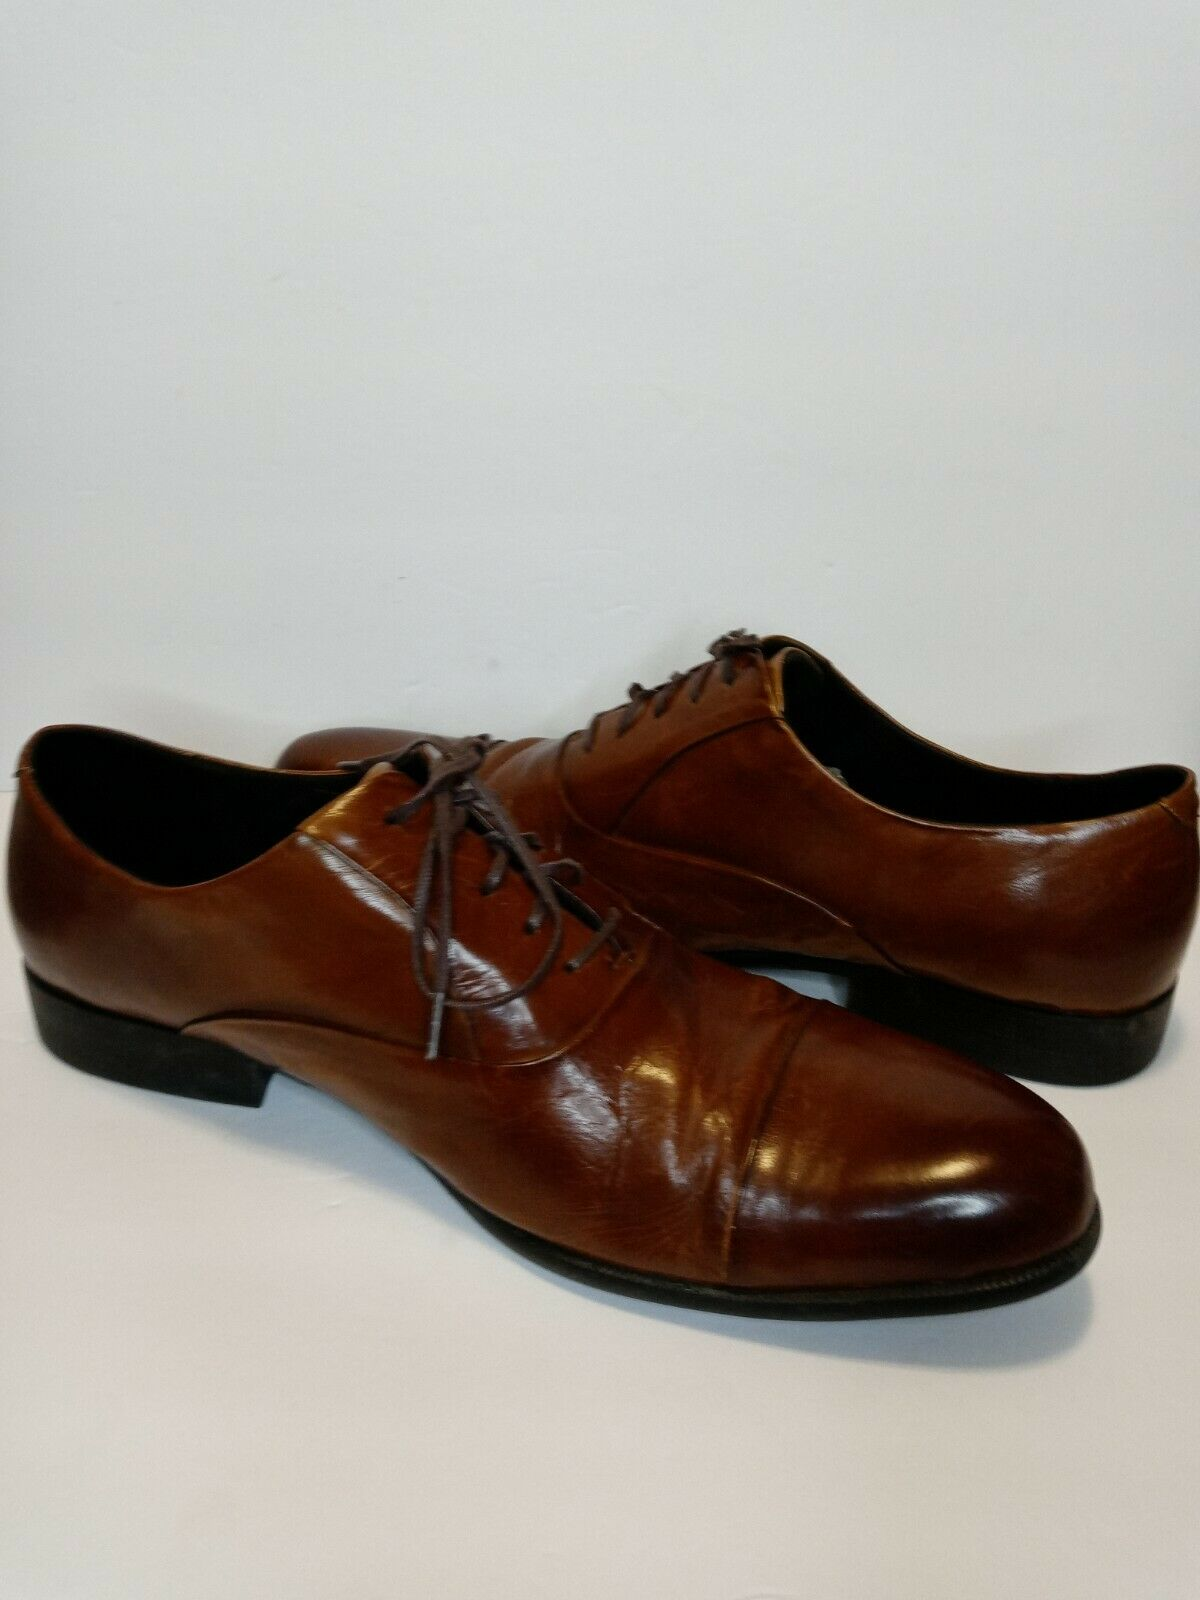 Kenneth Cole NY Men's Chief Advisor Cap Toe Dress Oxford US 11.5 Brown LEATHER